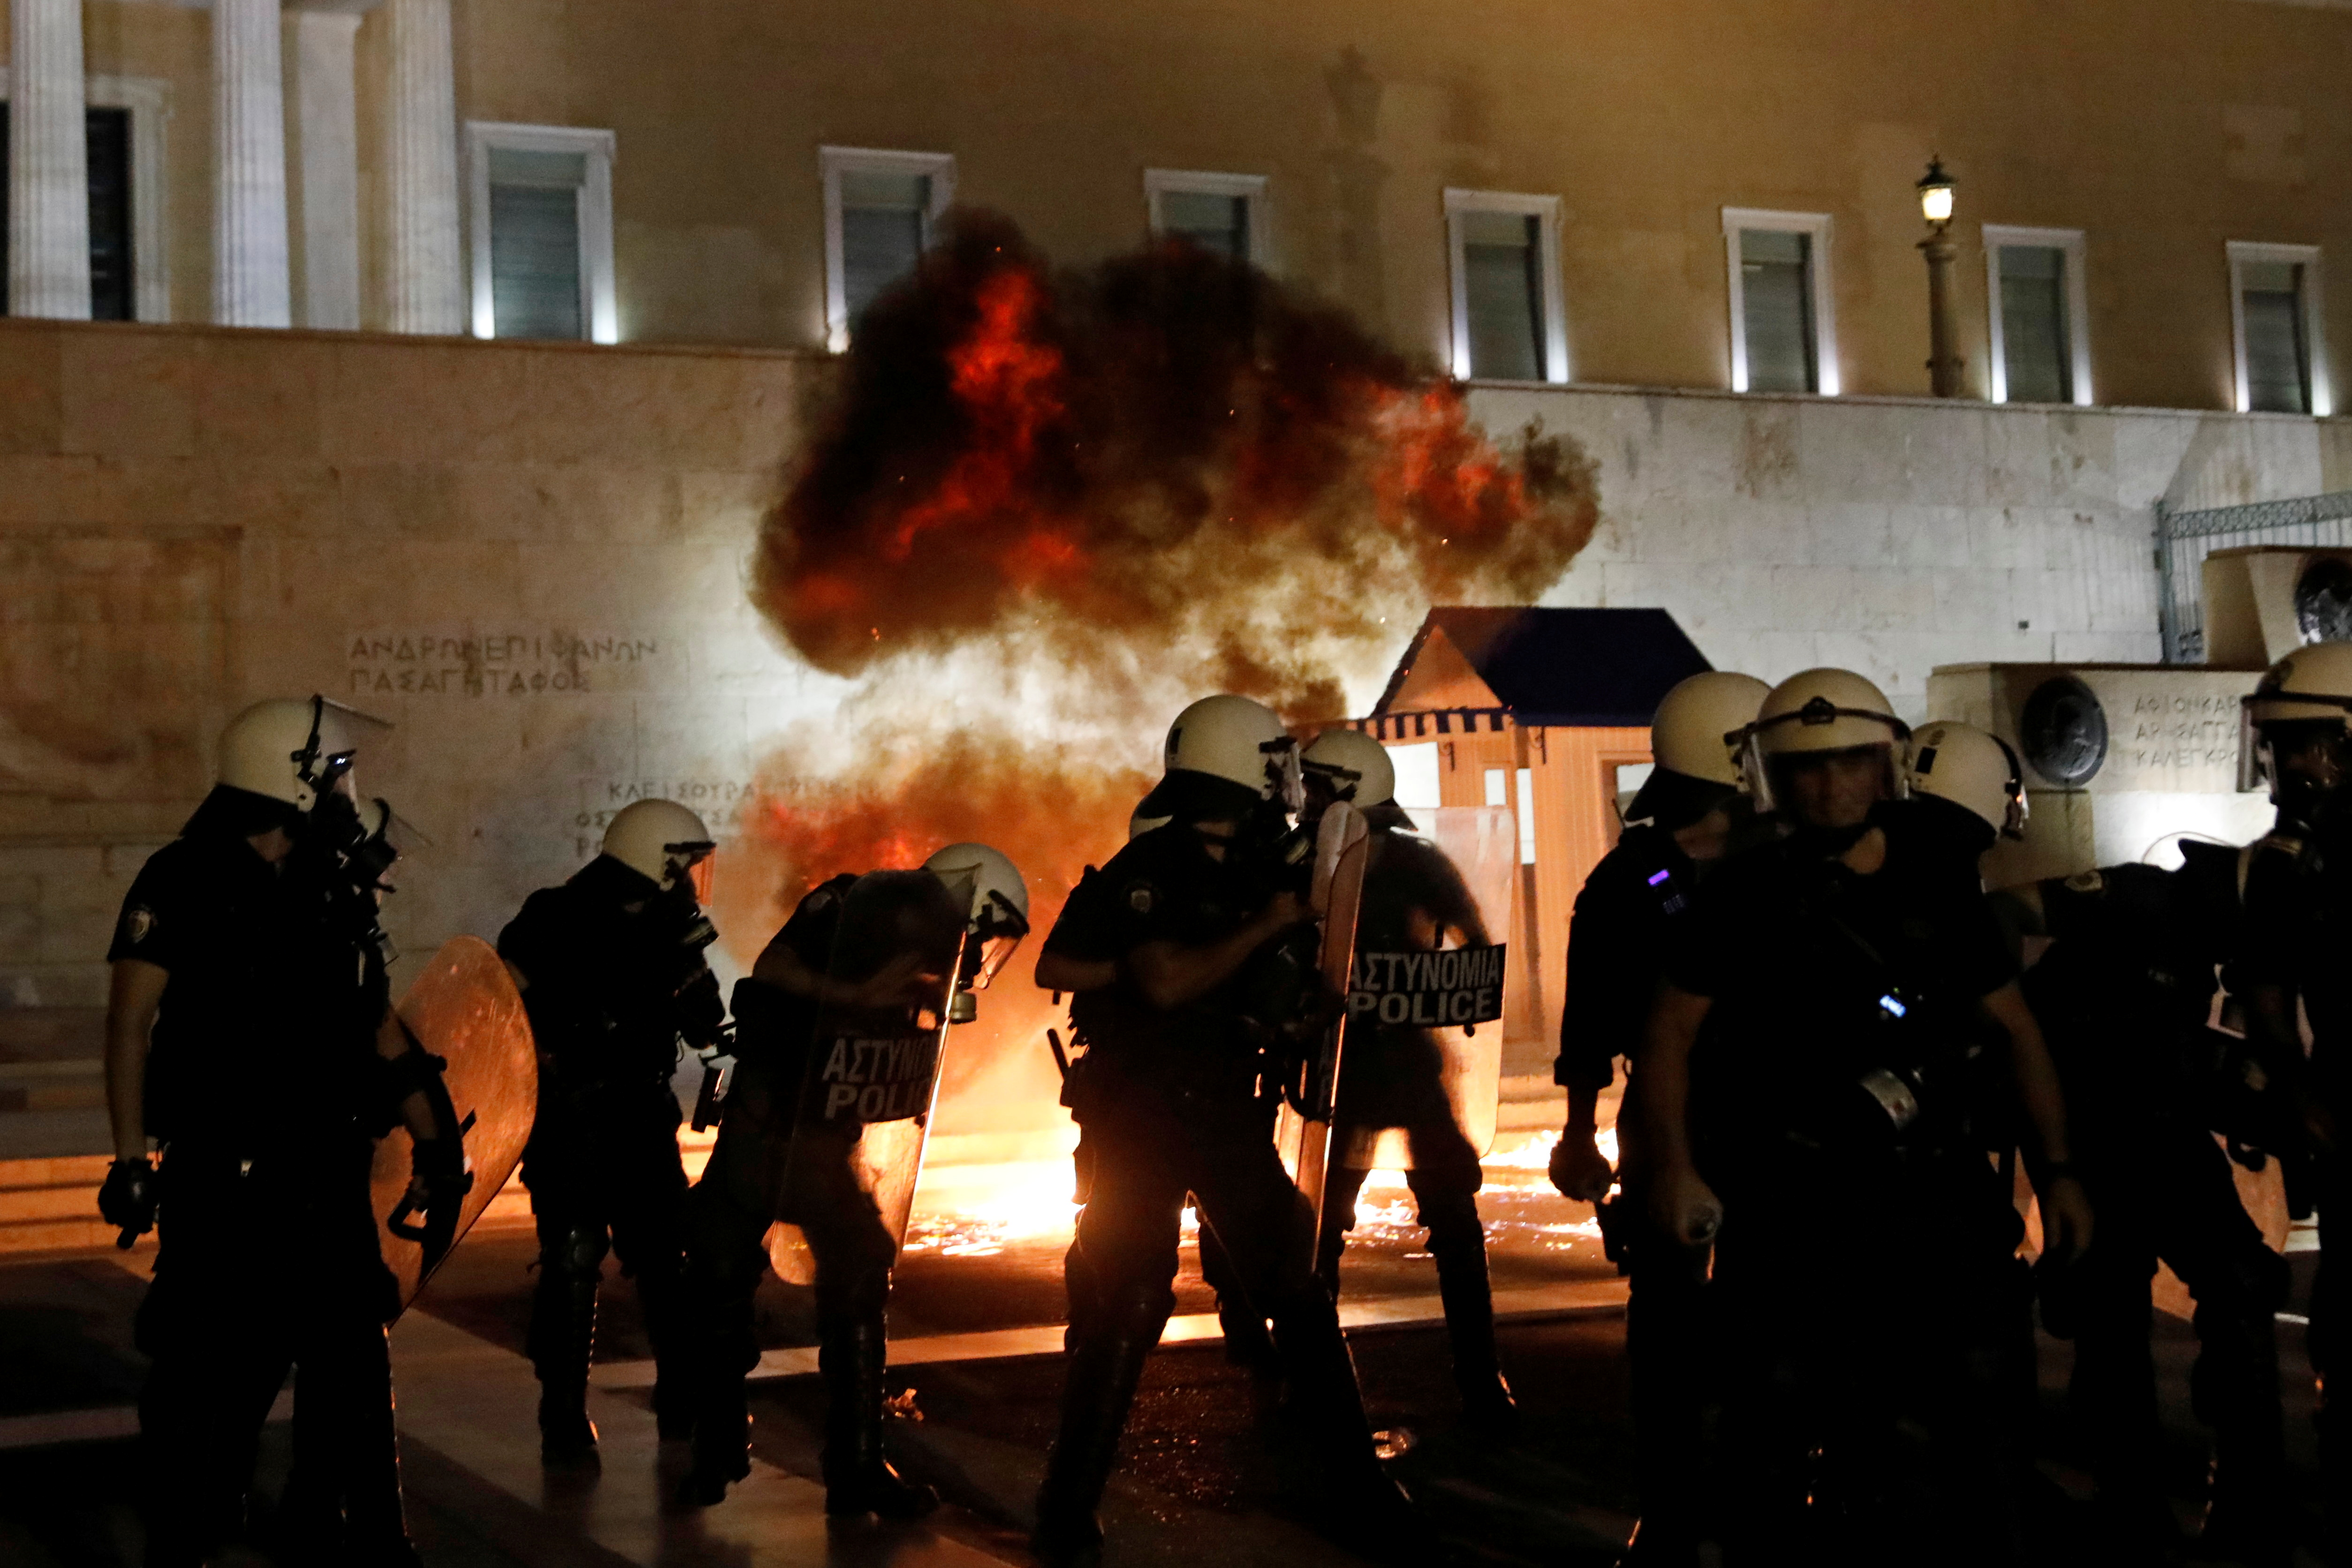 A petrol bomb explodes next to riot police during clashes in a protest against coronavirus disease (COVID-19) vaccinations, in Athens, Greece, July 24, 2021. REUTERS/Costas Baltas